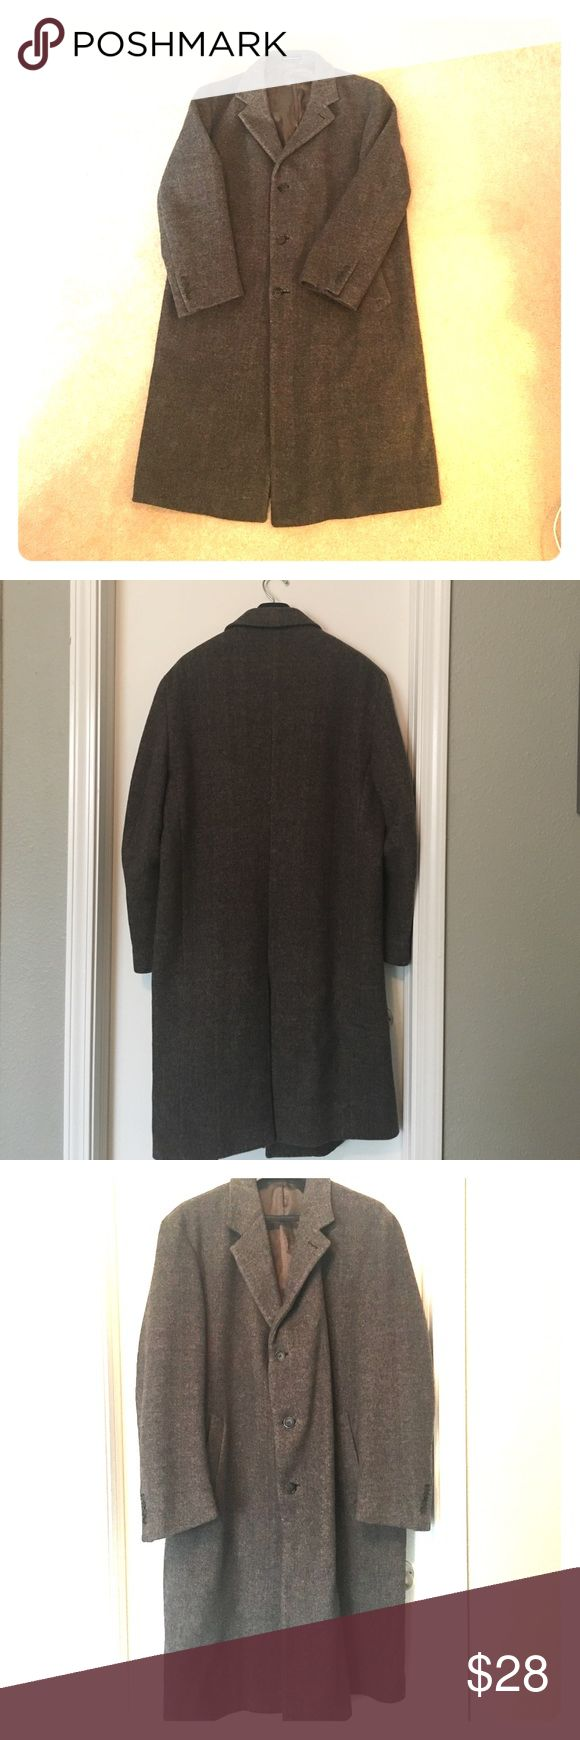 "Nautica-Men's Coat 🔸Winter Sale🎉 In great condition, charcoal colored men's peacoat.                                                      Nice details, such as buttons on the bottom of sleeves. Measurements-26"" x 33""                                                               Smoke-free home. Nautica Jackets & Coats Pea Coats"